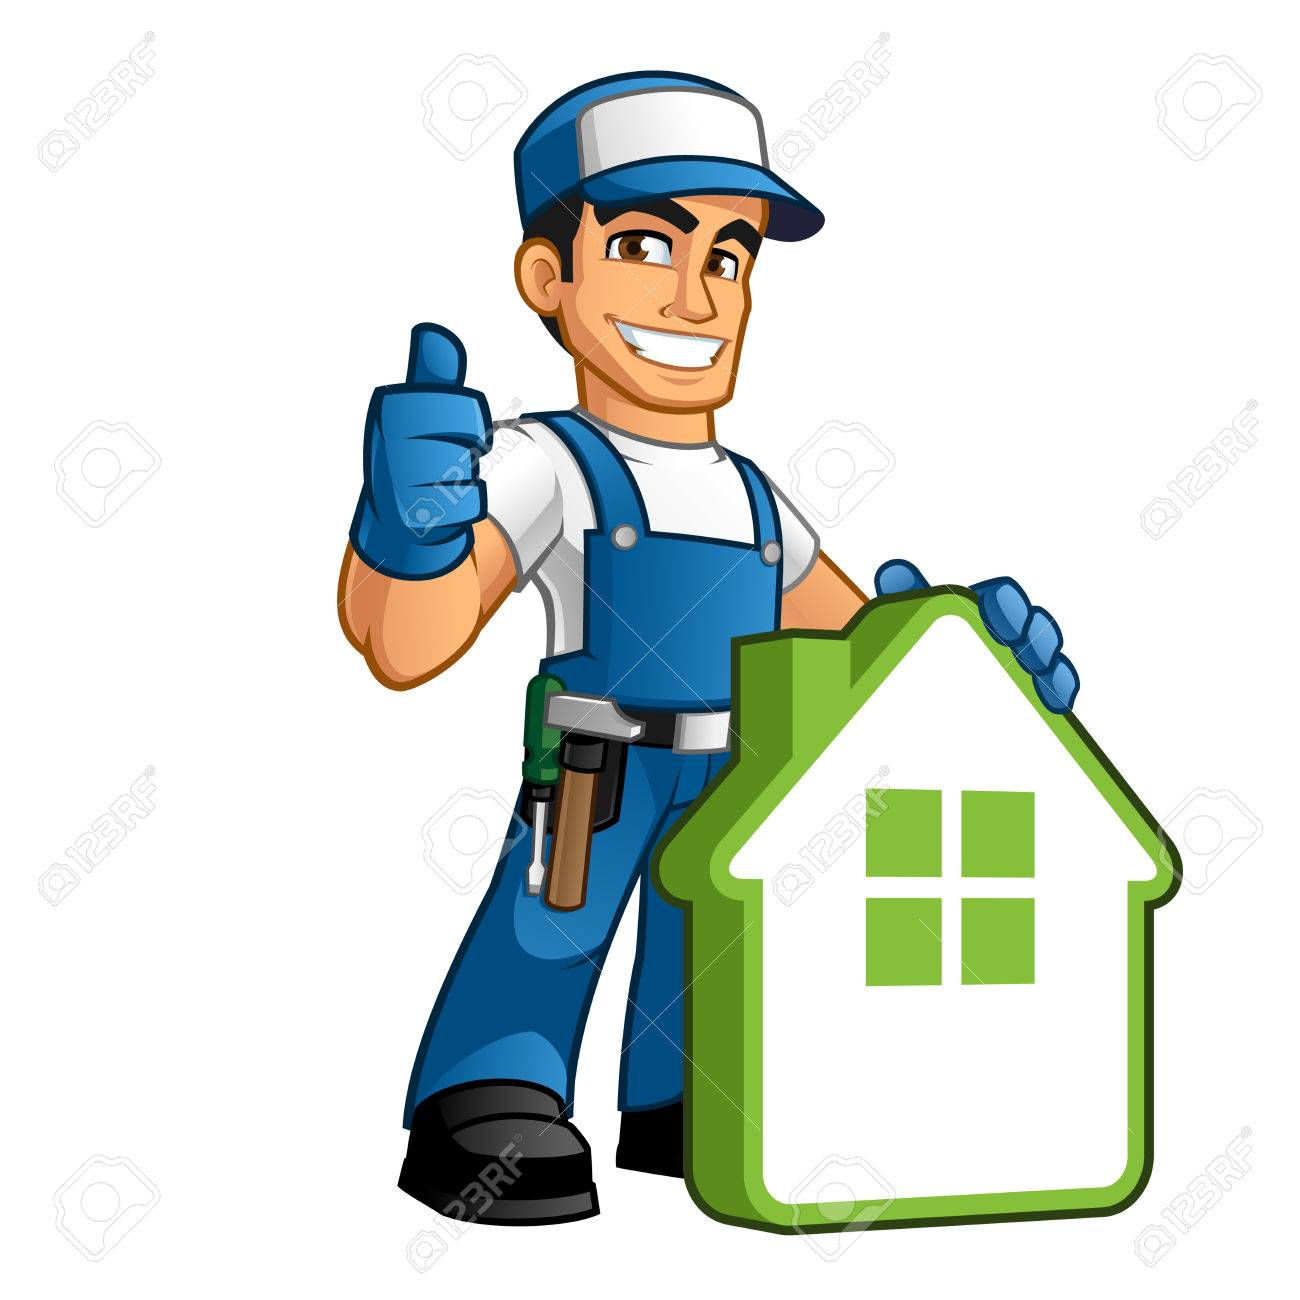 Handyman wearing work clothes and a belt, with tool - 63151178